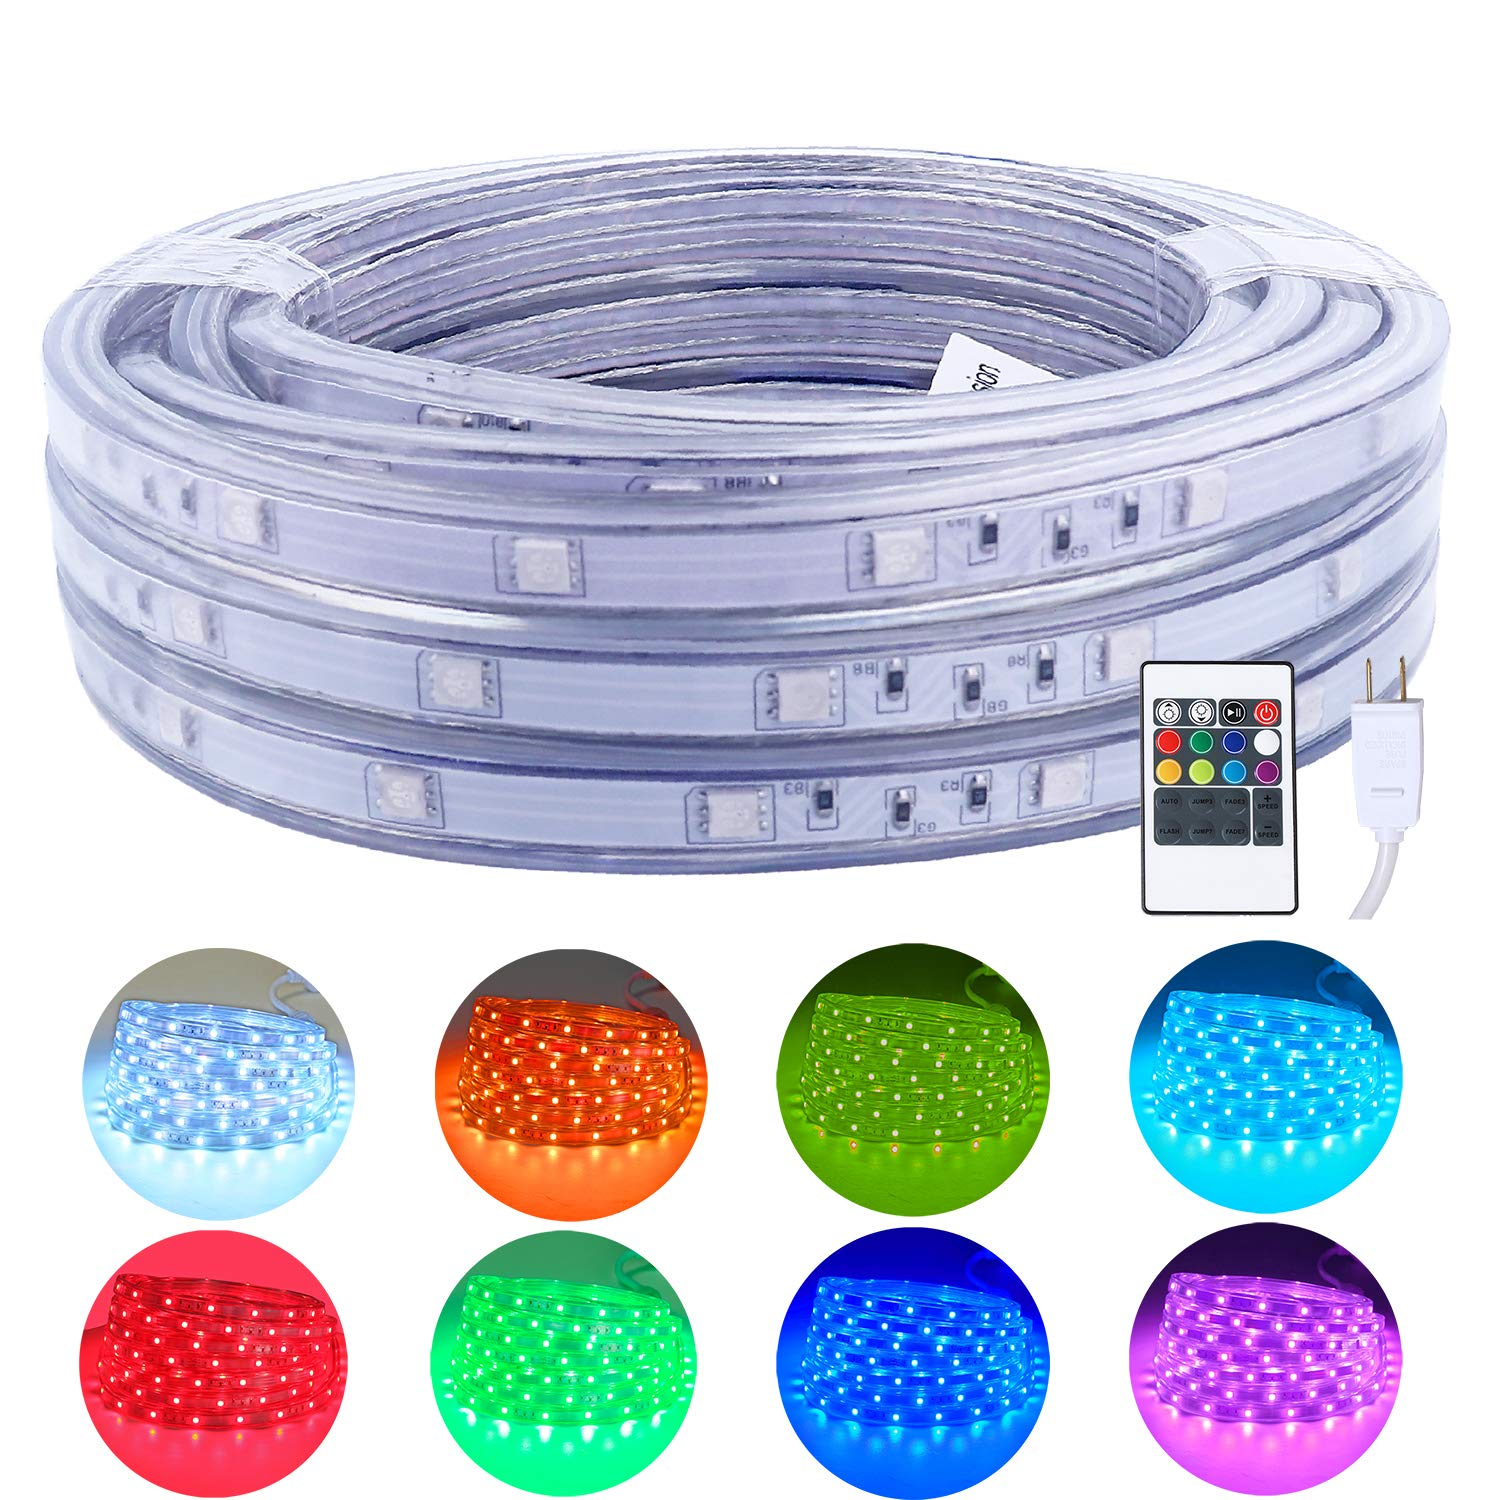 Areful 16.4ft LED Rope Lights, Color Changing Strip Lights with Remote, Flat Flexible Connectable and Dimmable, Waterproof for Indoor Outdoor Use, 8 Colors and 6 Modes